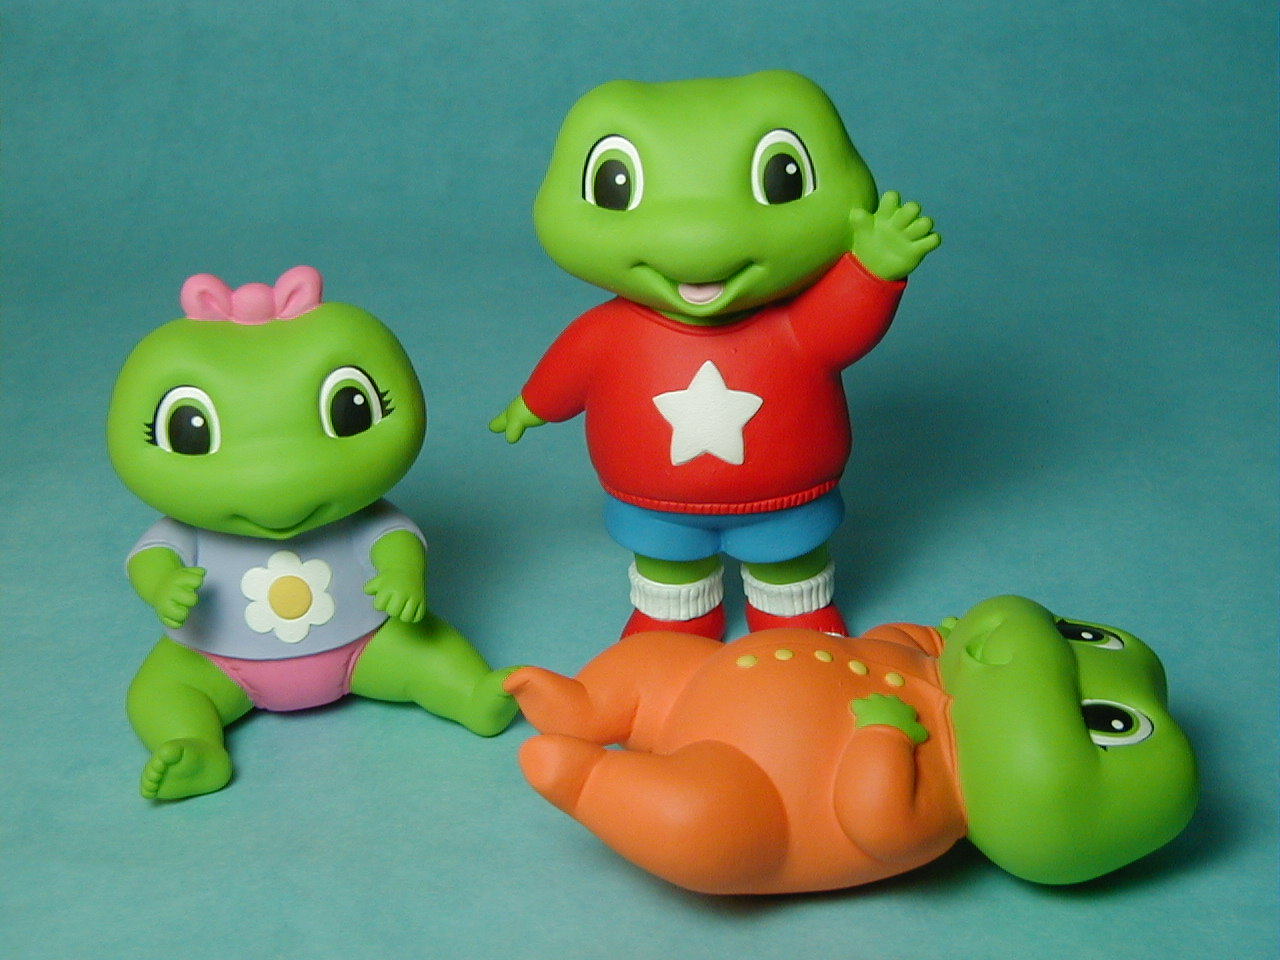 Leapfrog toys froggy character studies - not for production